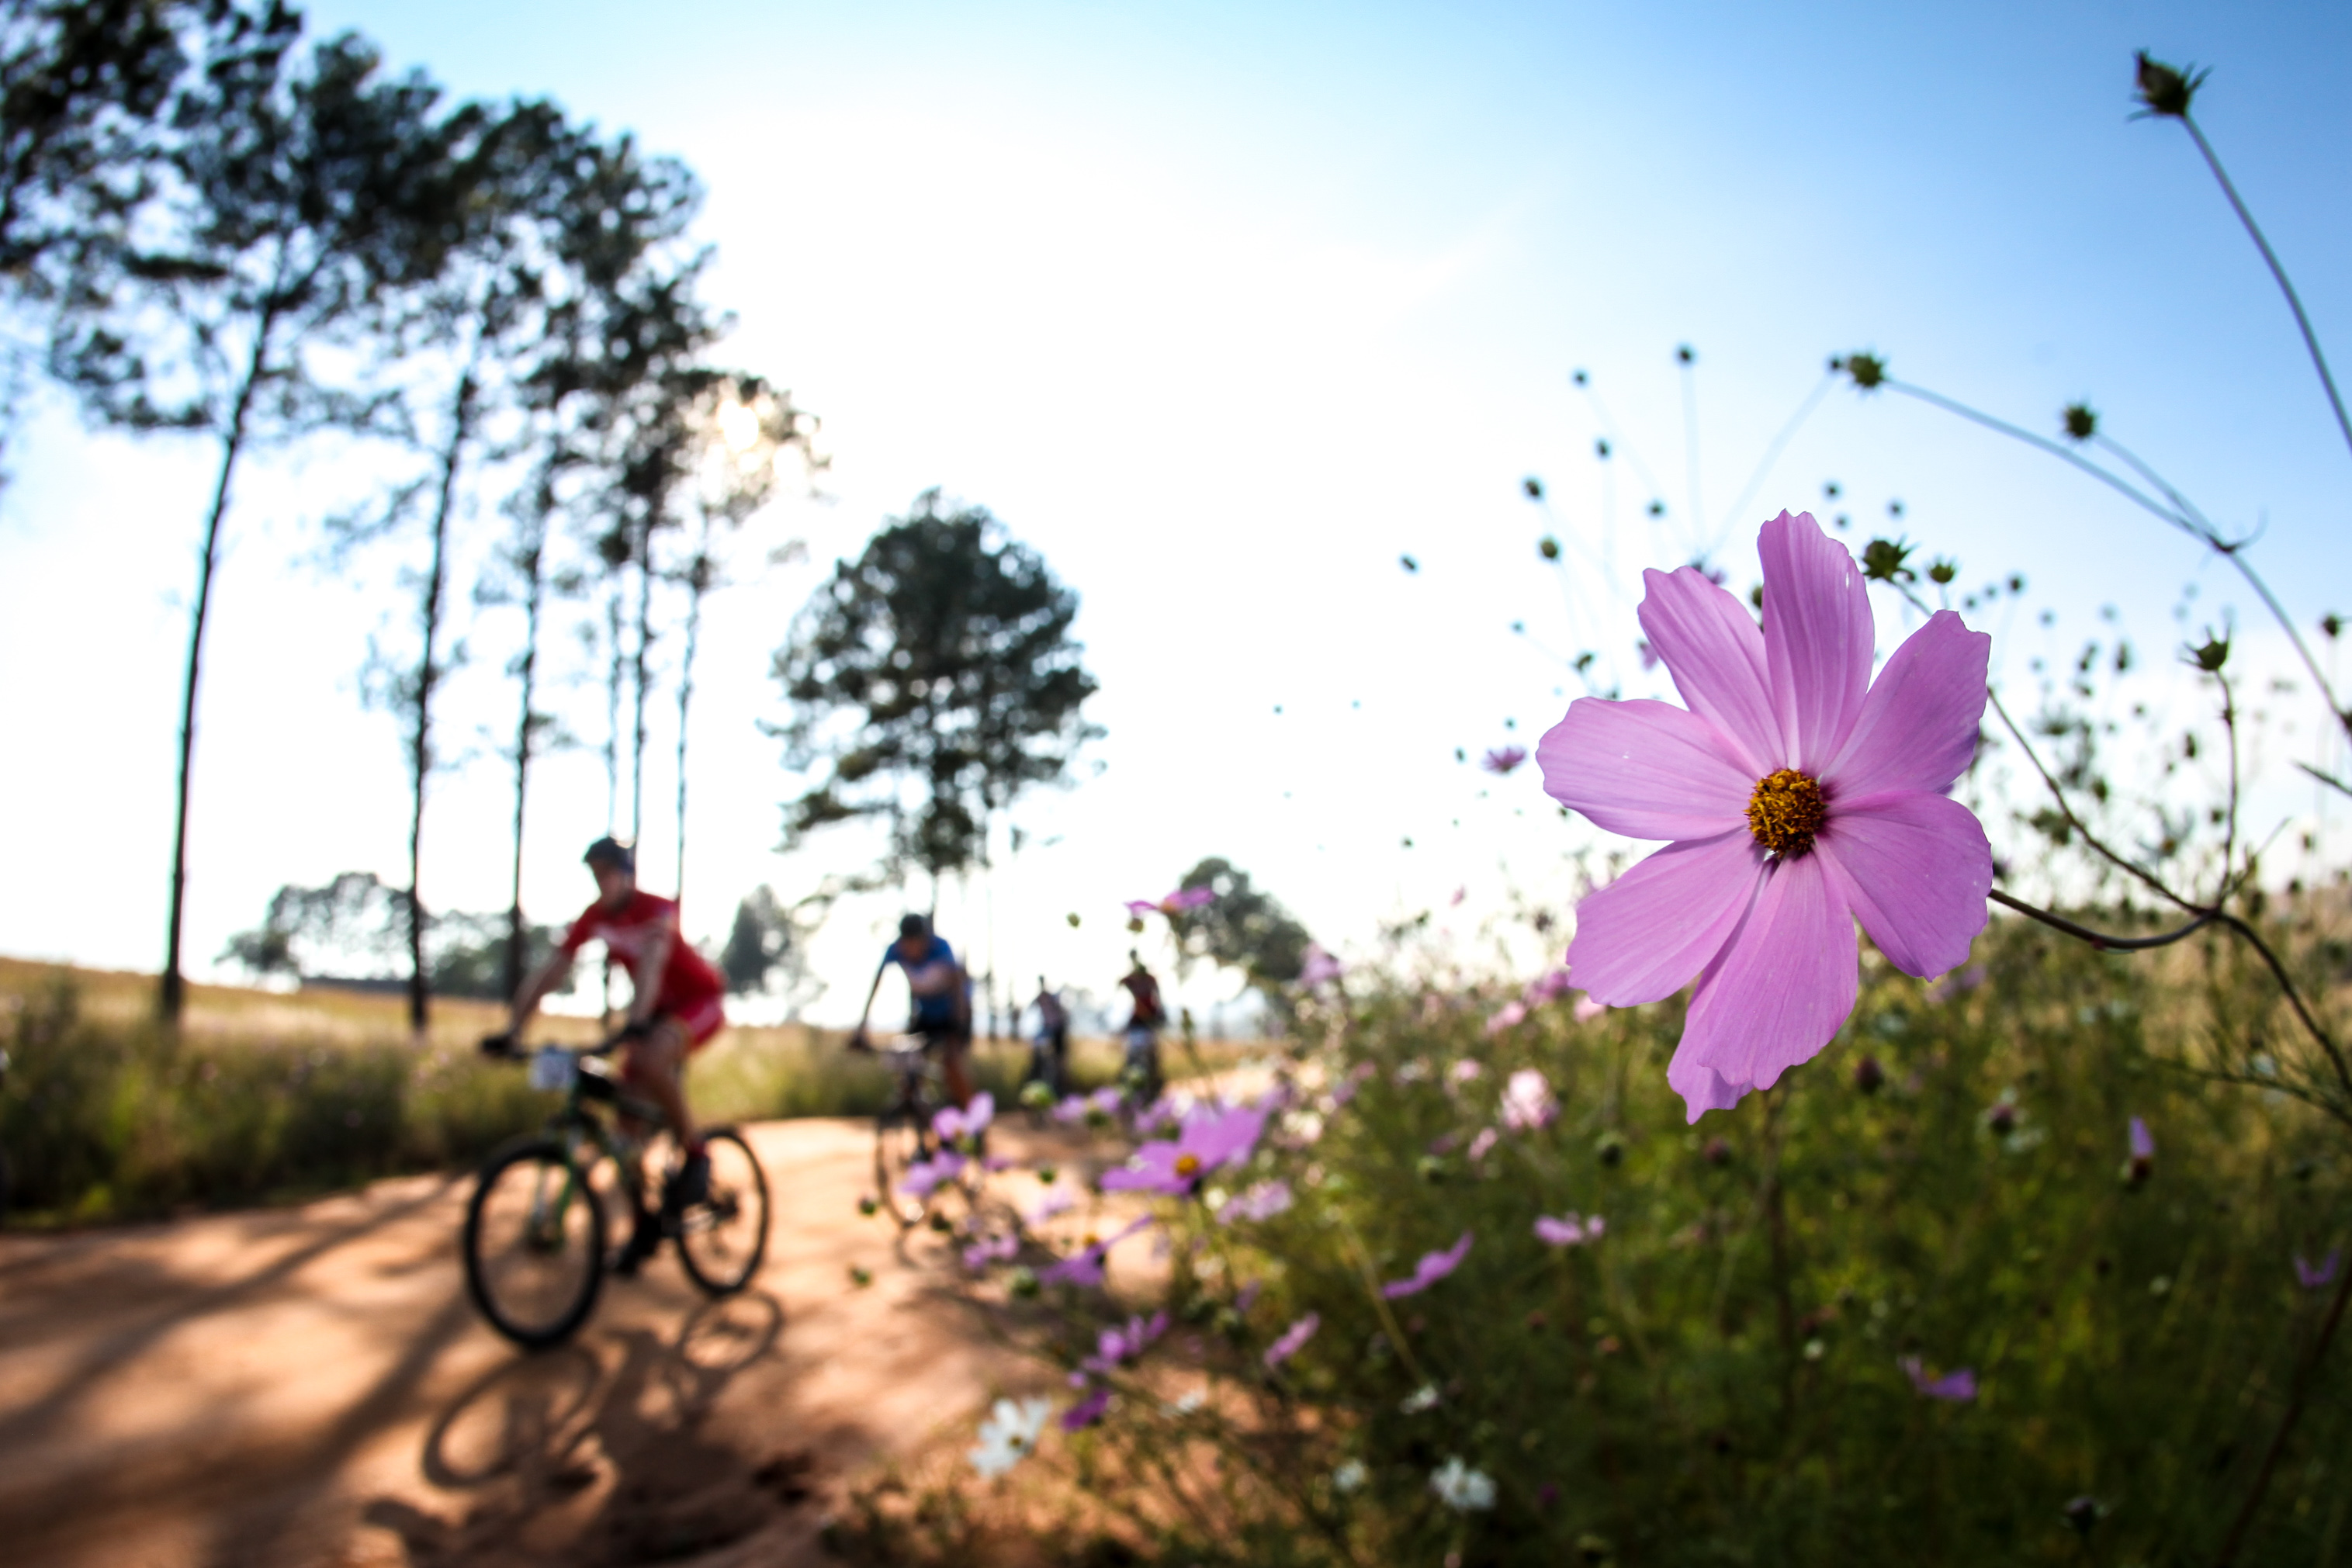 RIDERS GEAR UP FOR GAUTENG'S PREMIER STAGE RACE